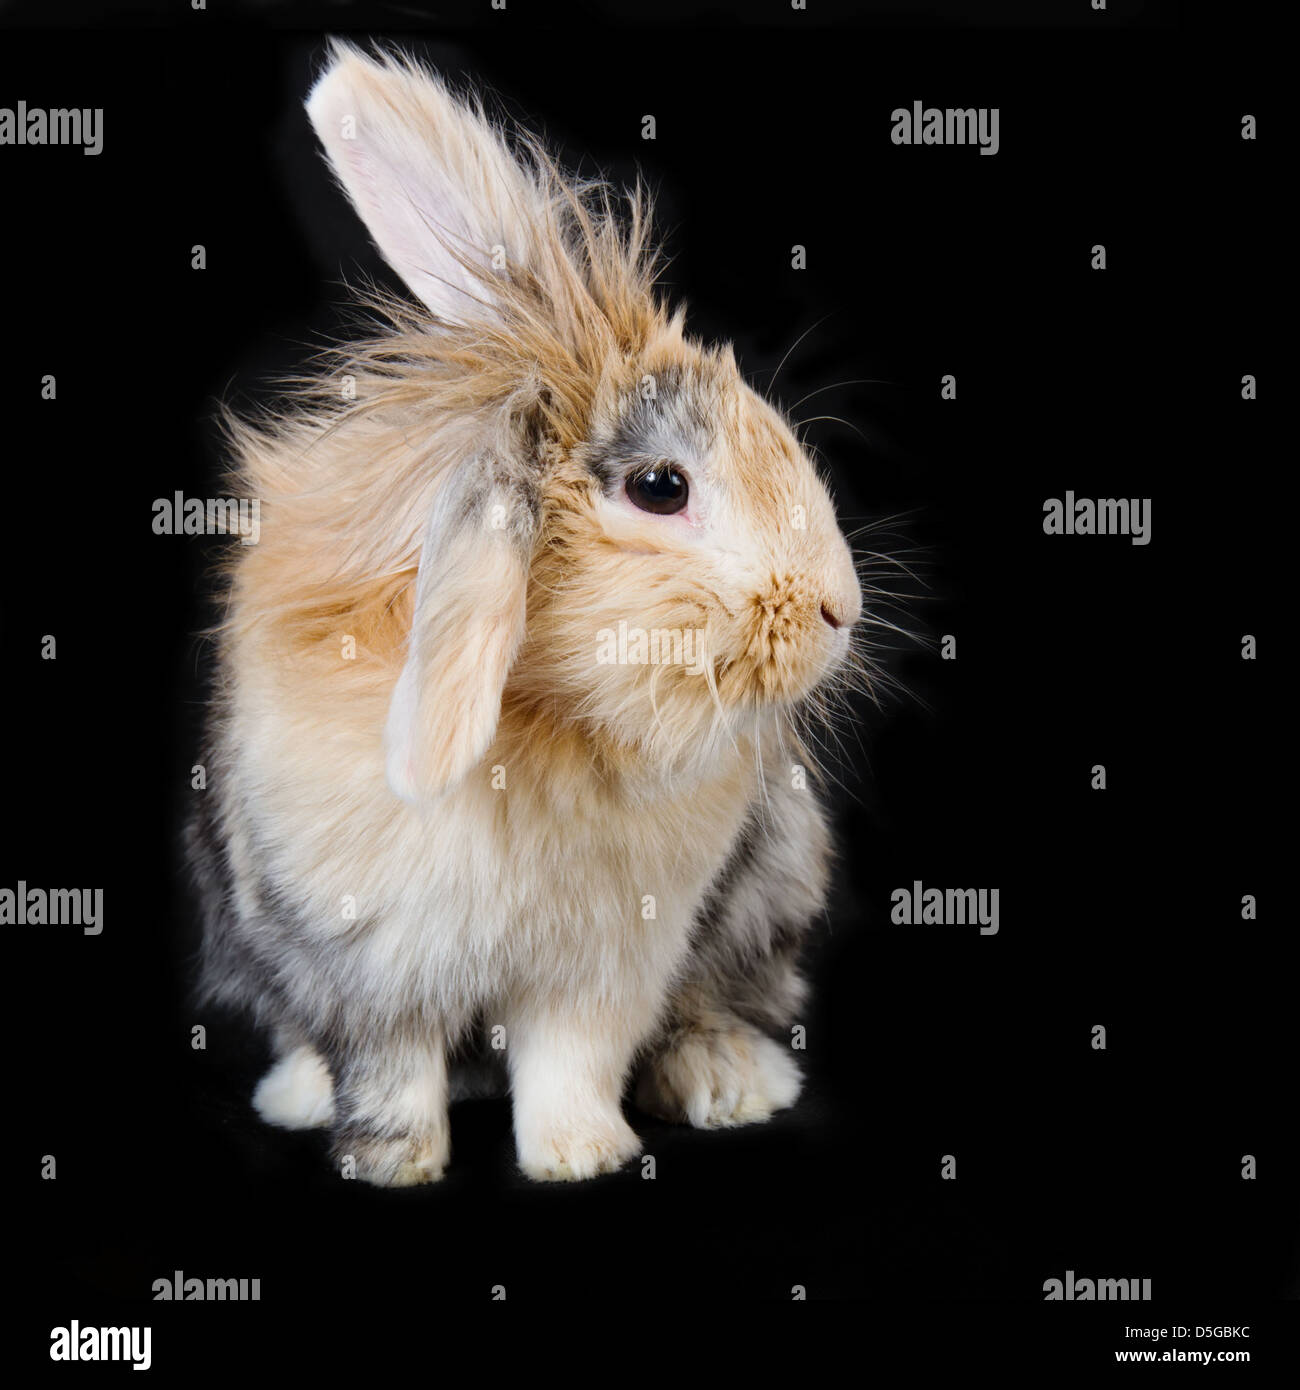 Light brown lop ear bunny on black background - Stock Image